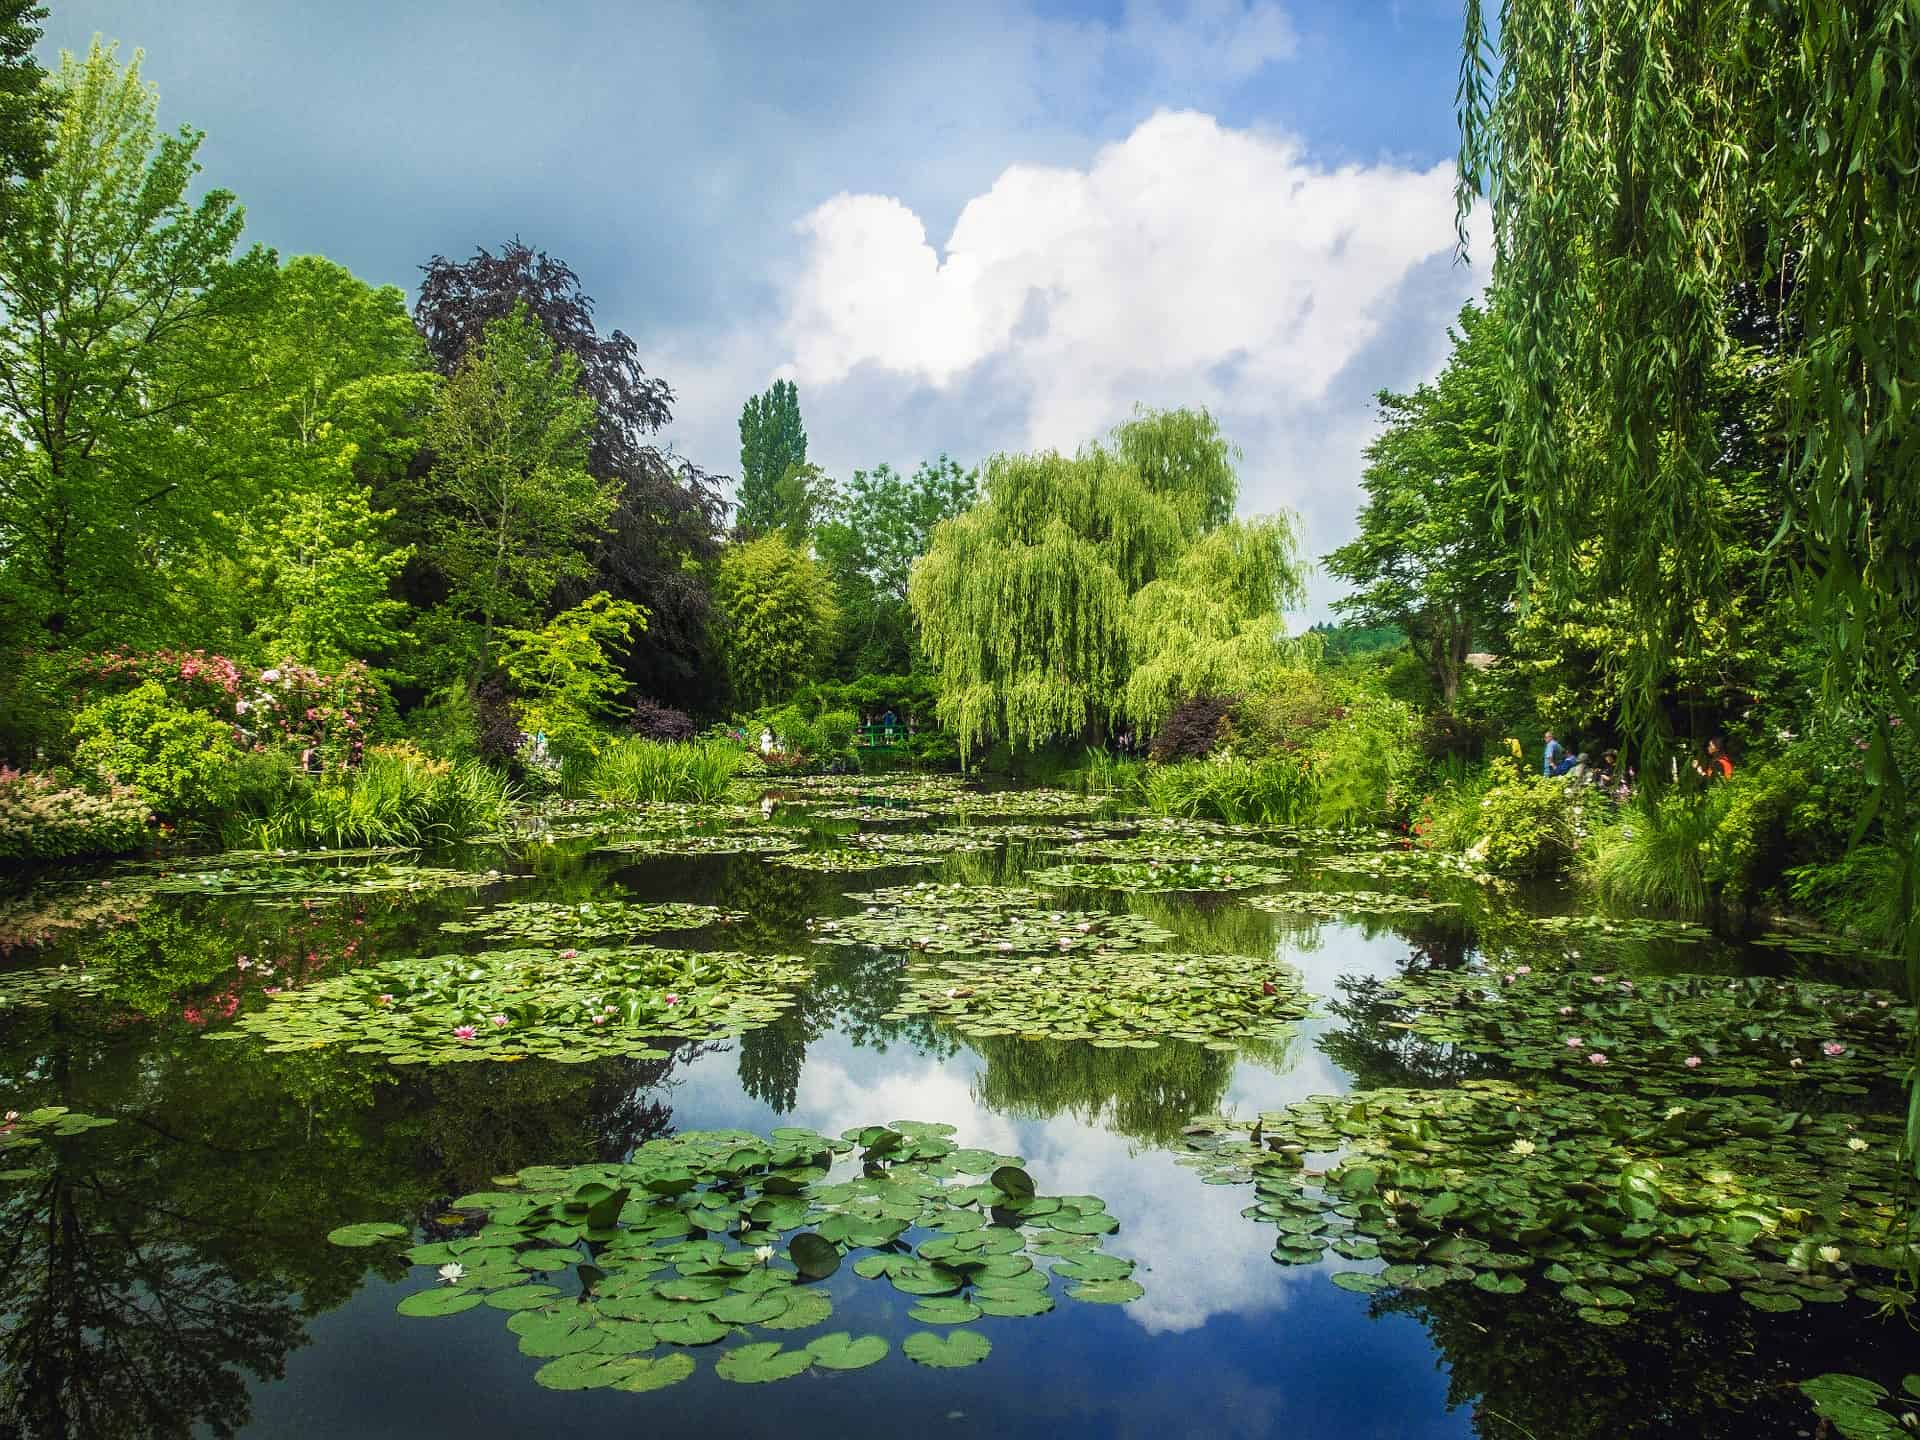 What to do in Paris in 4 days? There is so much choice when it comes to sightseeing in Paris, but a 4 day trip to Paris isn't complete without discovering Paris surrounding. For example to the Garden of Monet in Giverny.